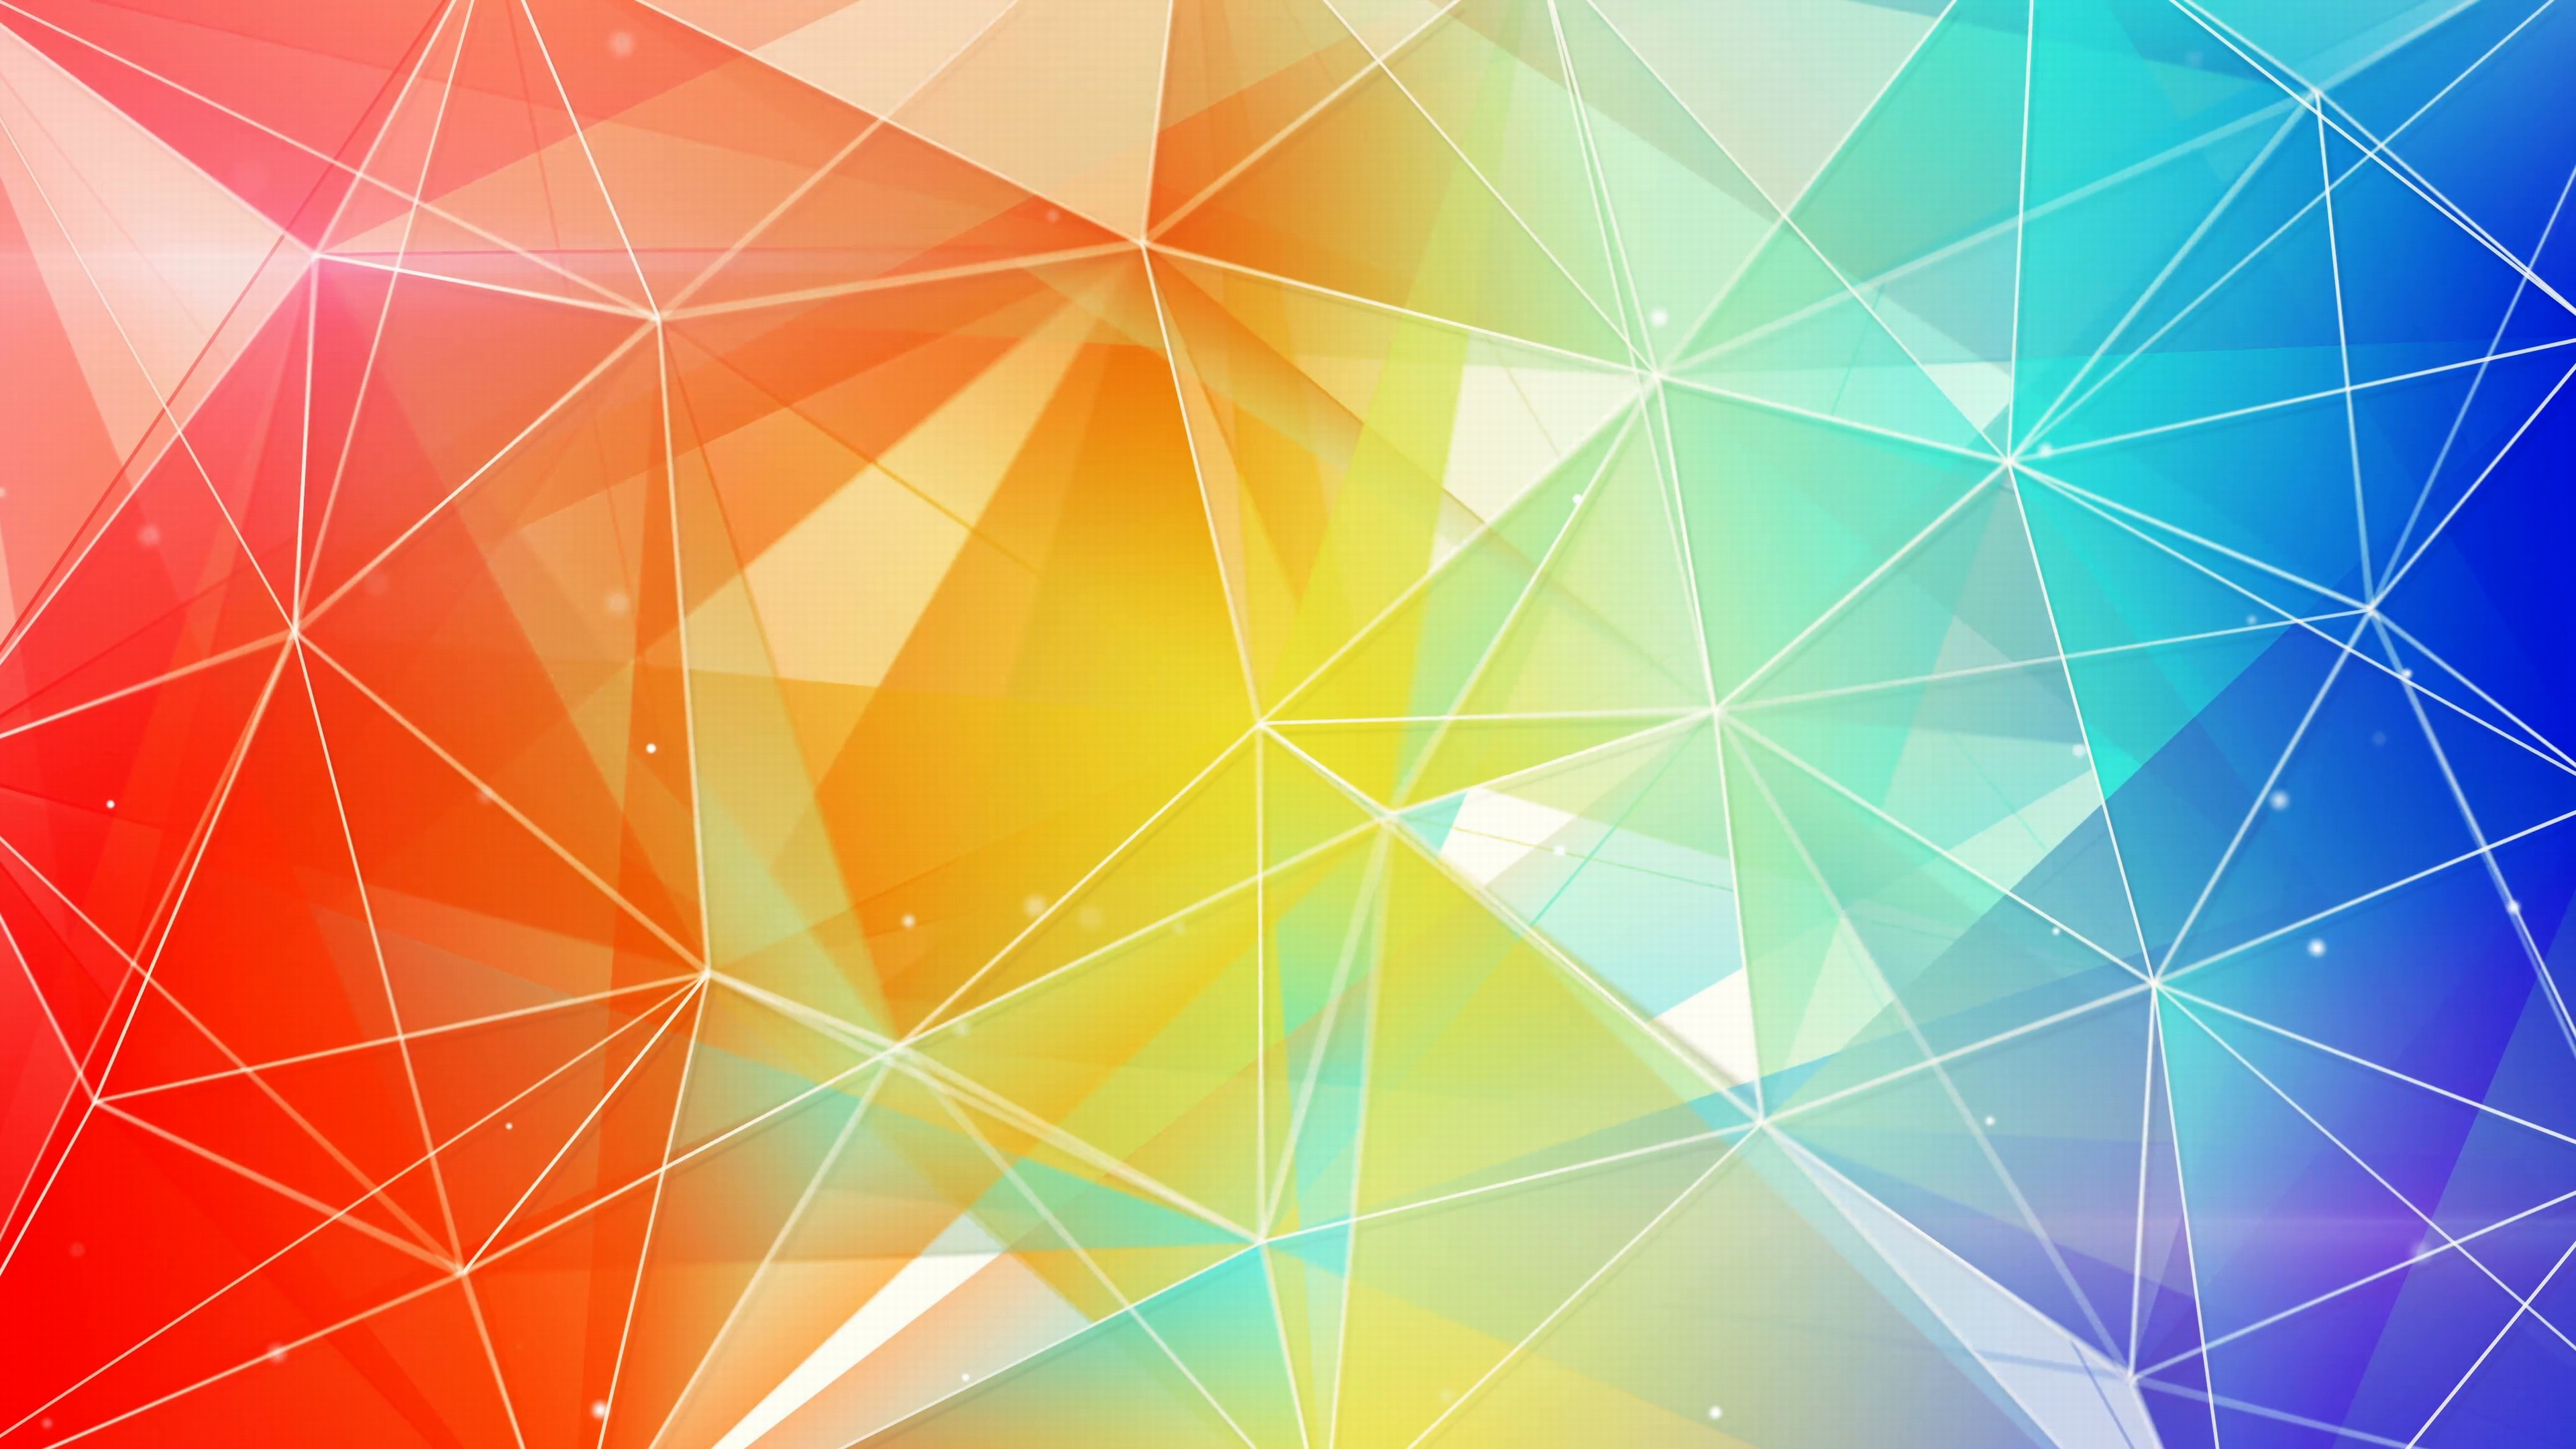 Colorful Wallpaper Hd For Wallpaper Idea   Data-src - Colorful Triangle Abstract Background - HD Wallpaper